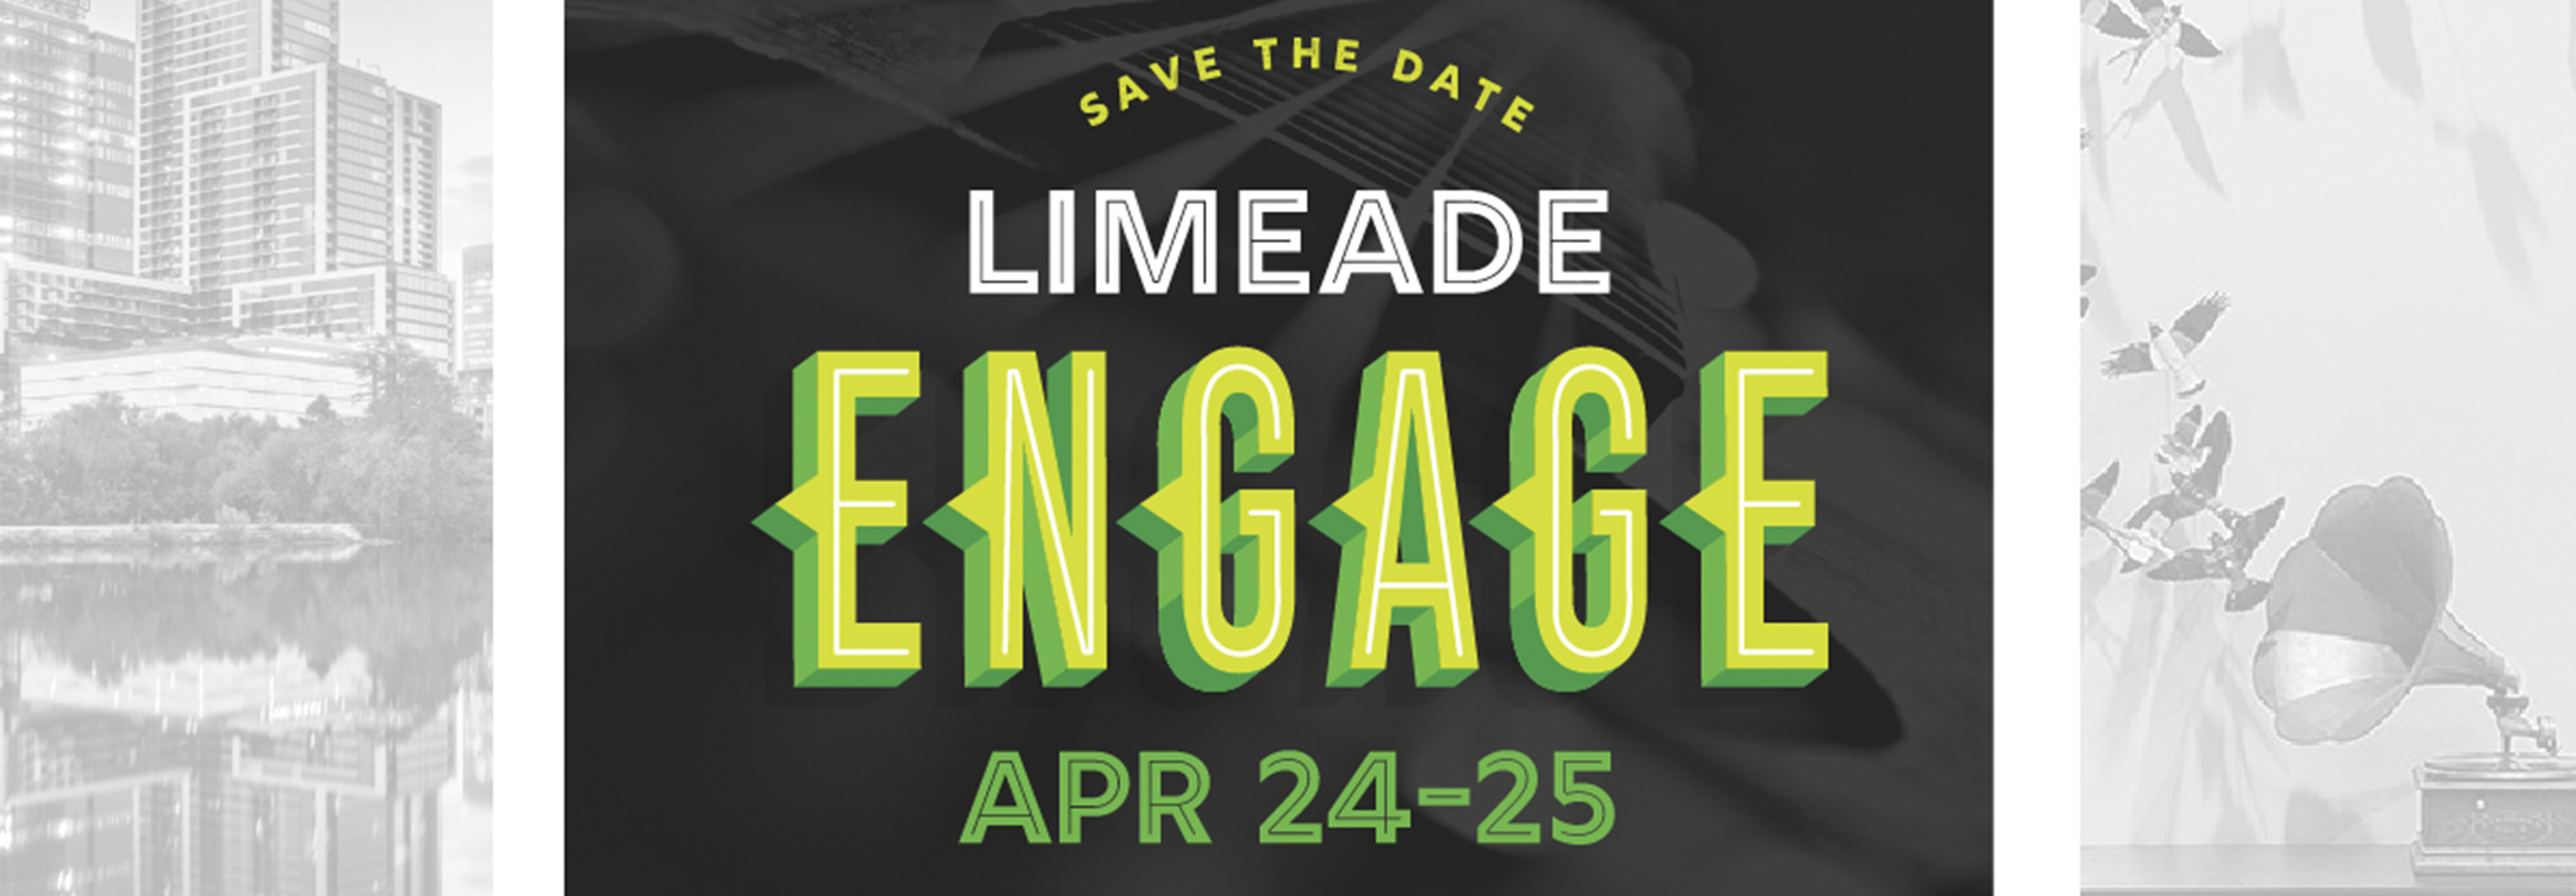 Save the Date: Limeade Engage 2019